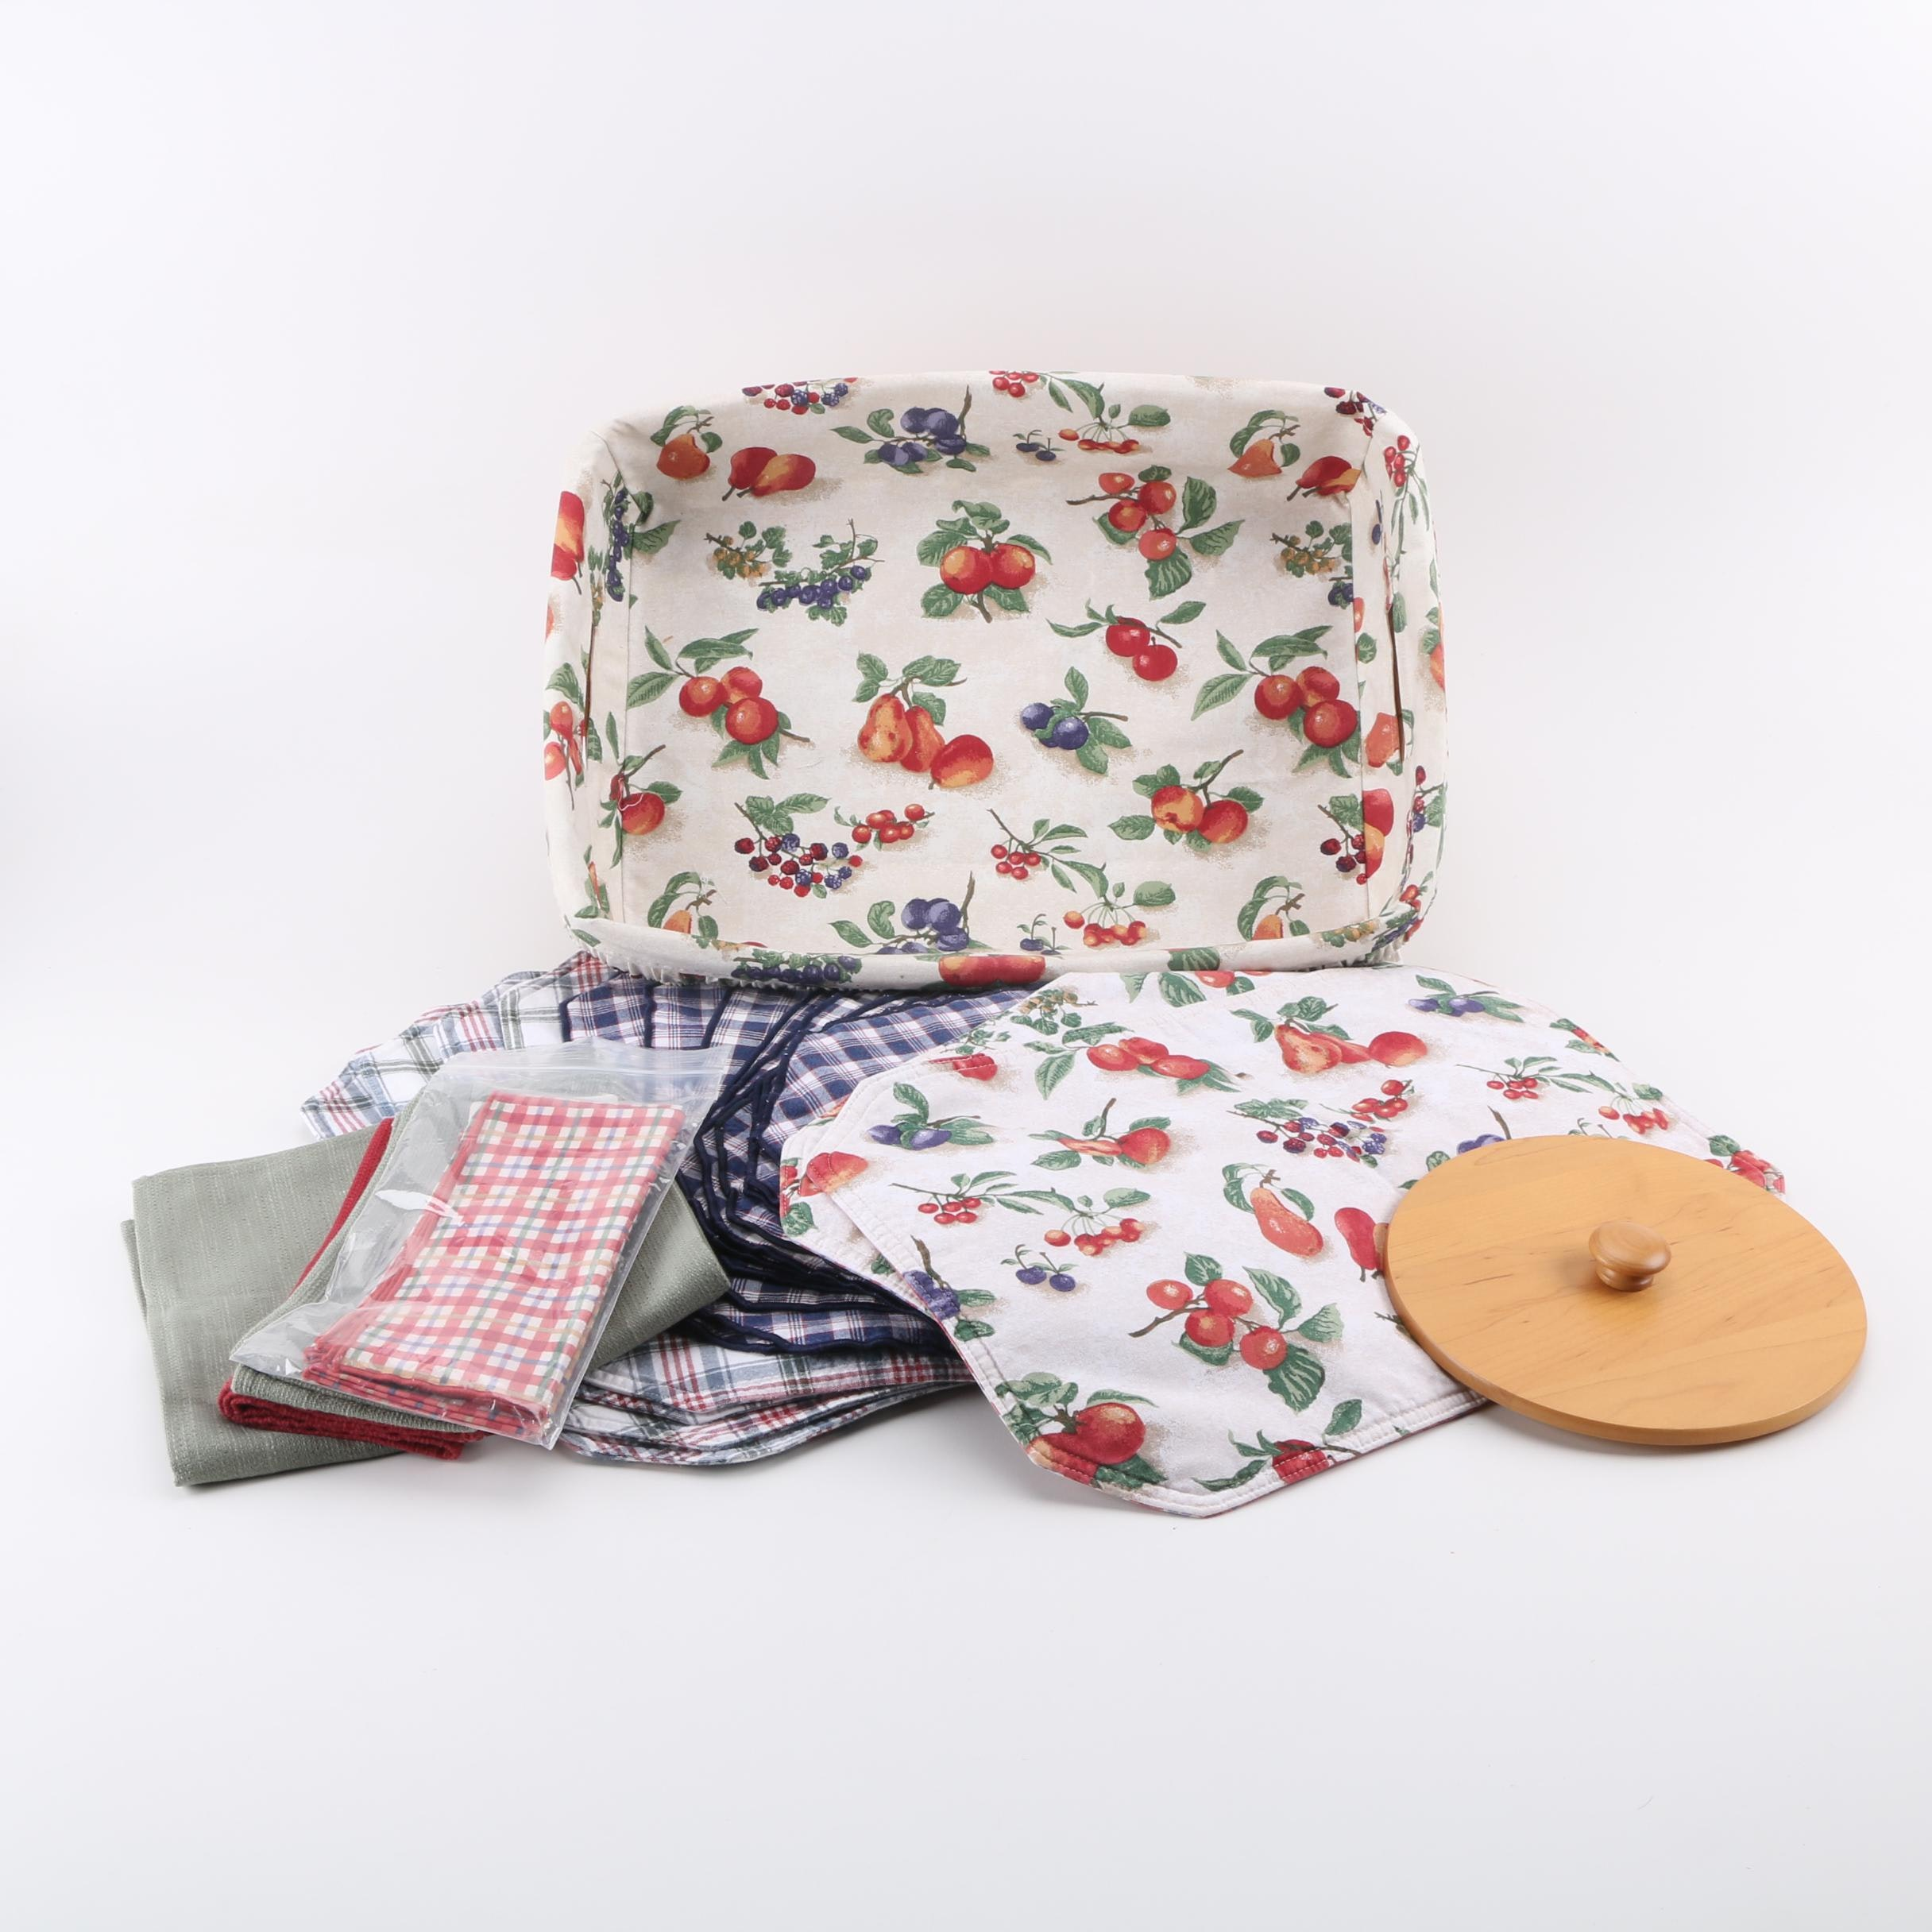 Longaberger Basket with Assortment of Table Linens